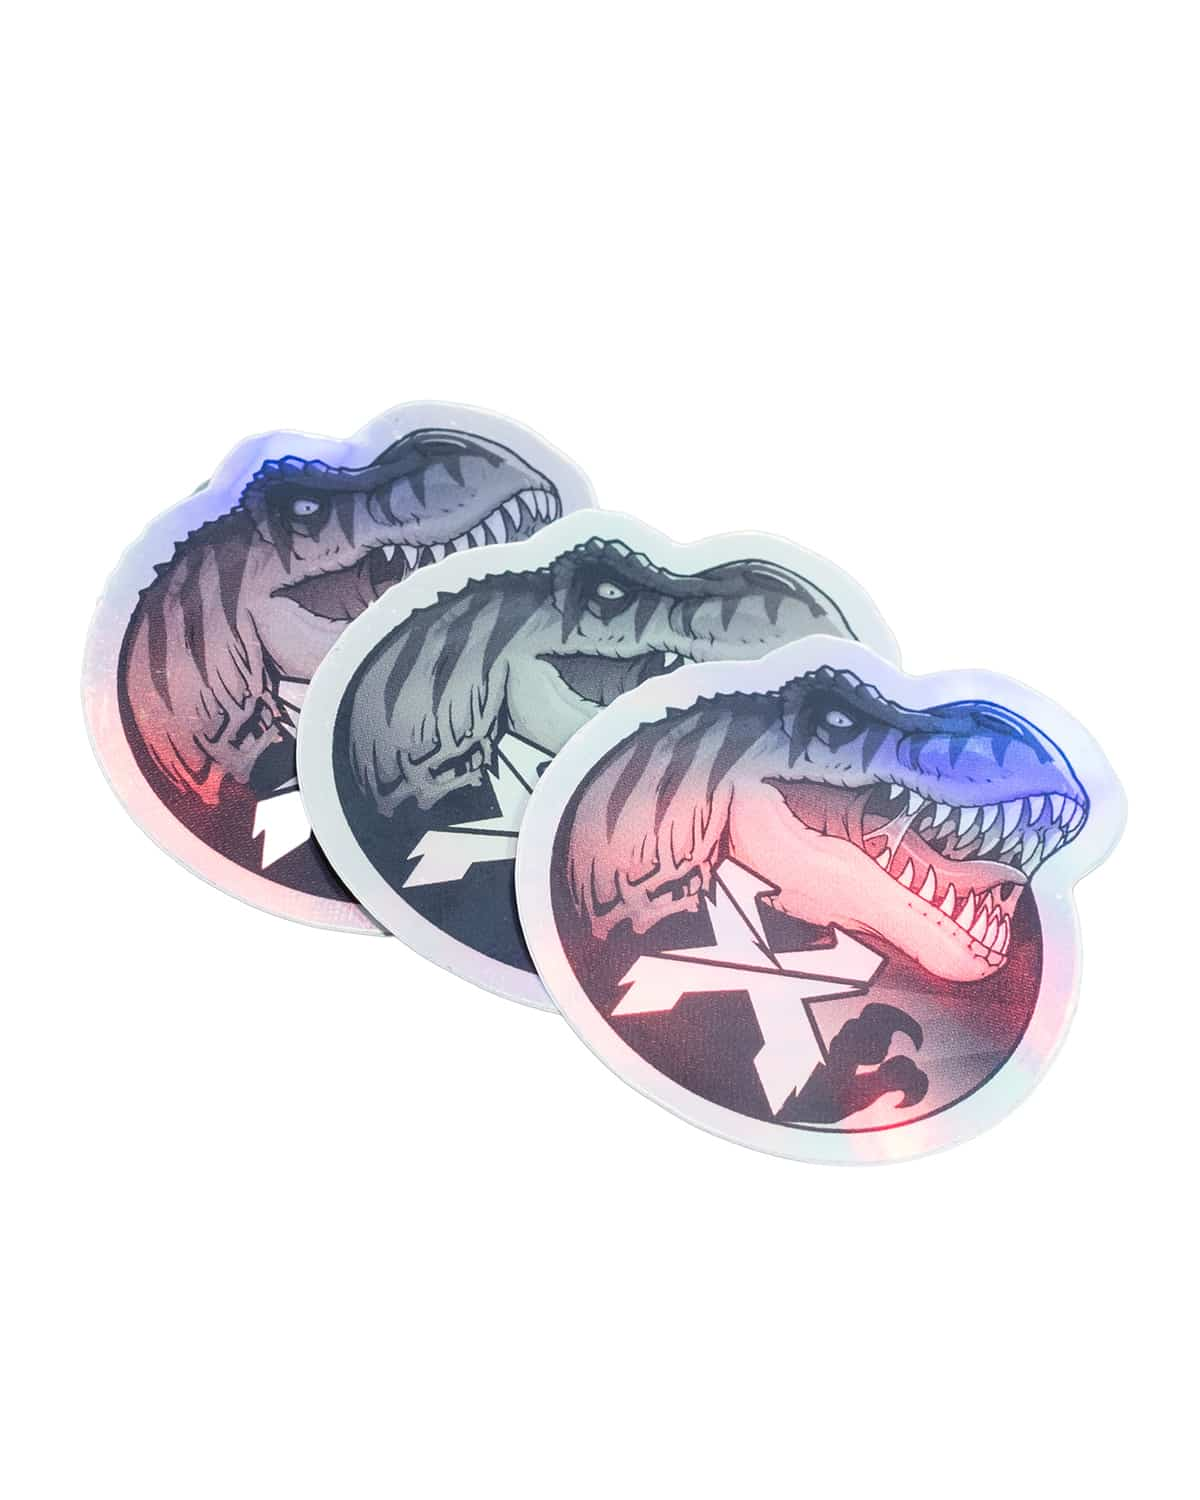 Triple Rex Sticker Pack